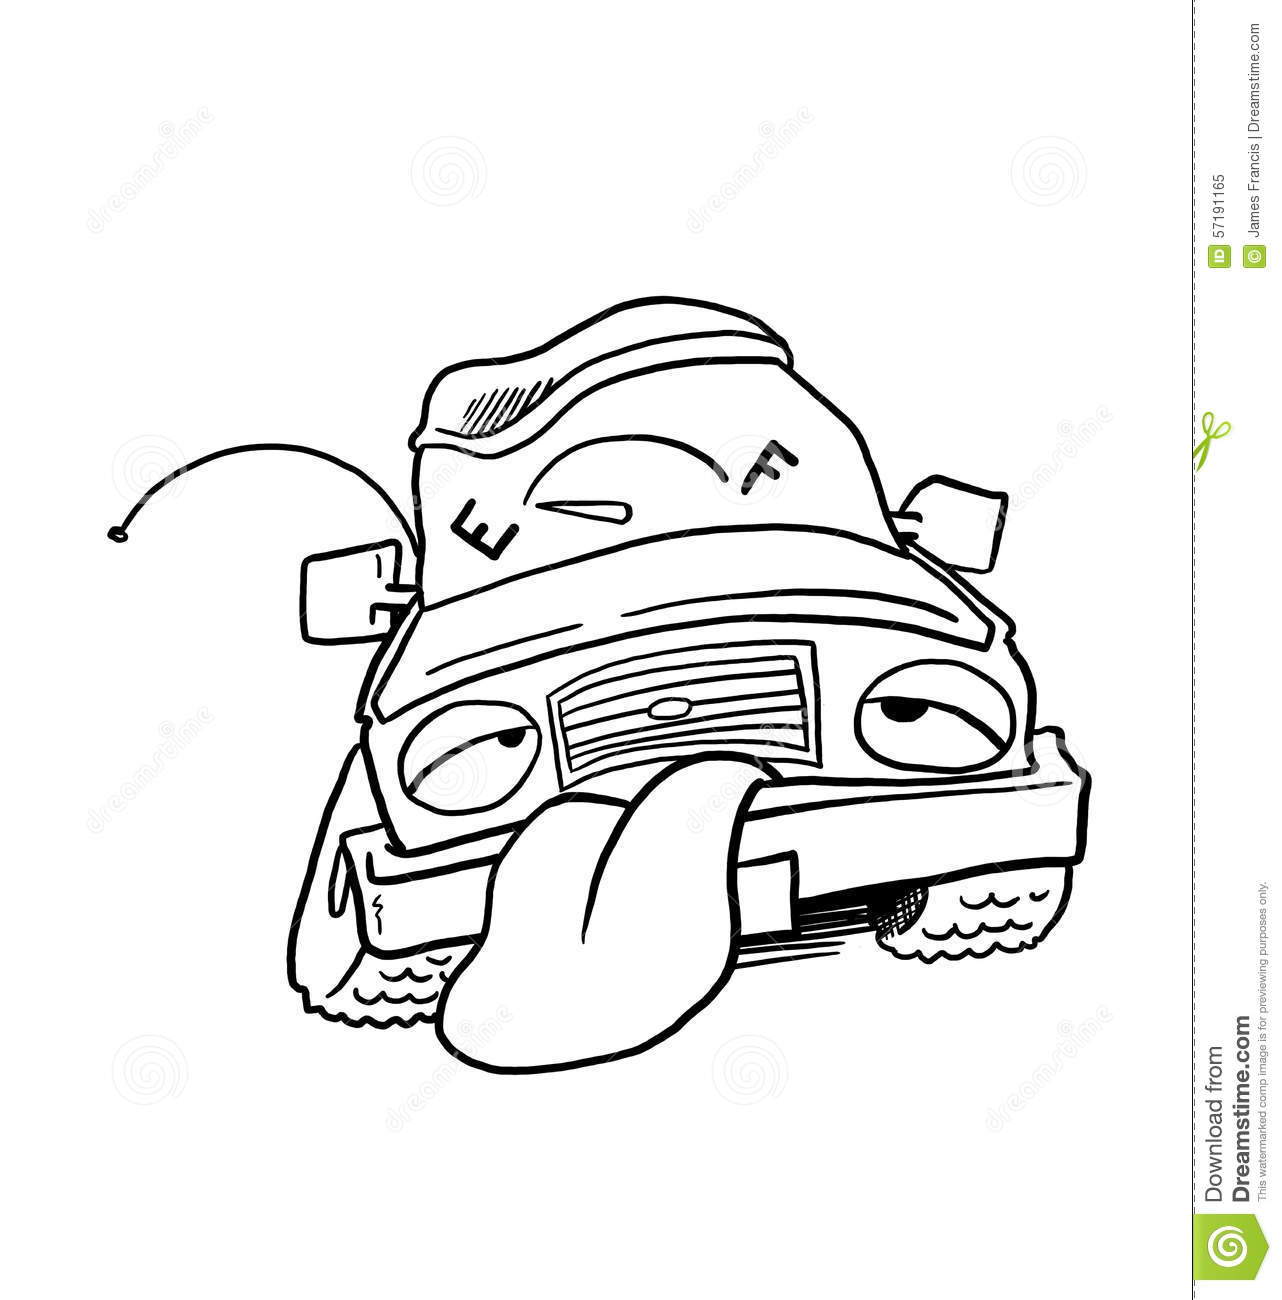 293437731955336240 in addition Car Fuel Meter in addition  on honda zoomer wiring diagram